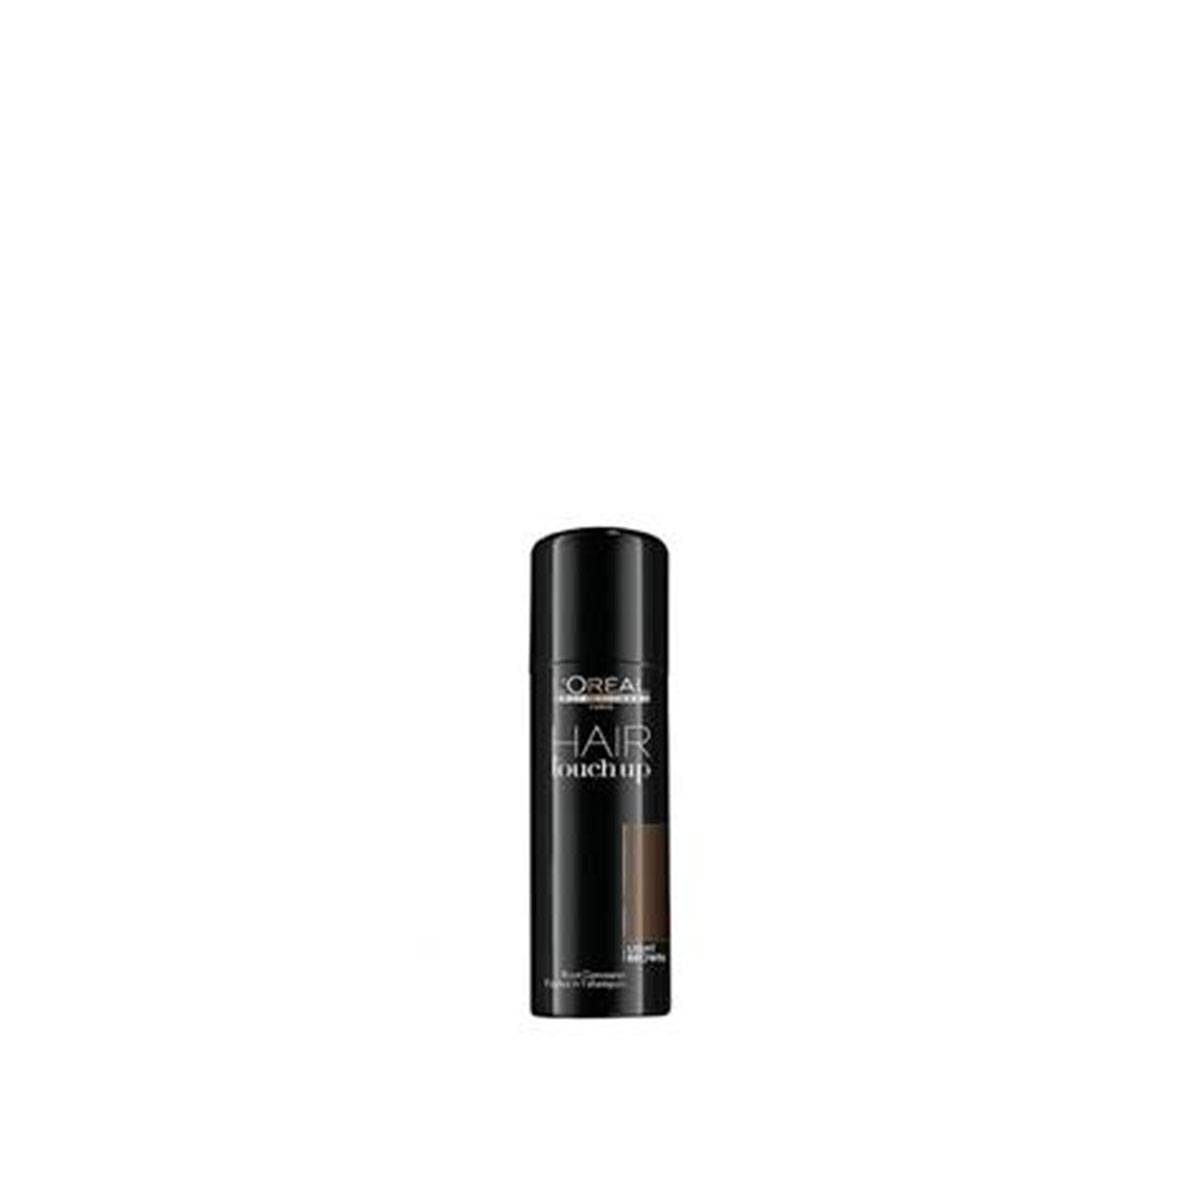 Hair Touch Up Light Brown 75ml Spray